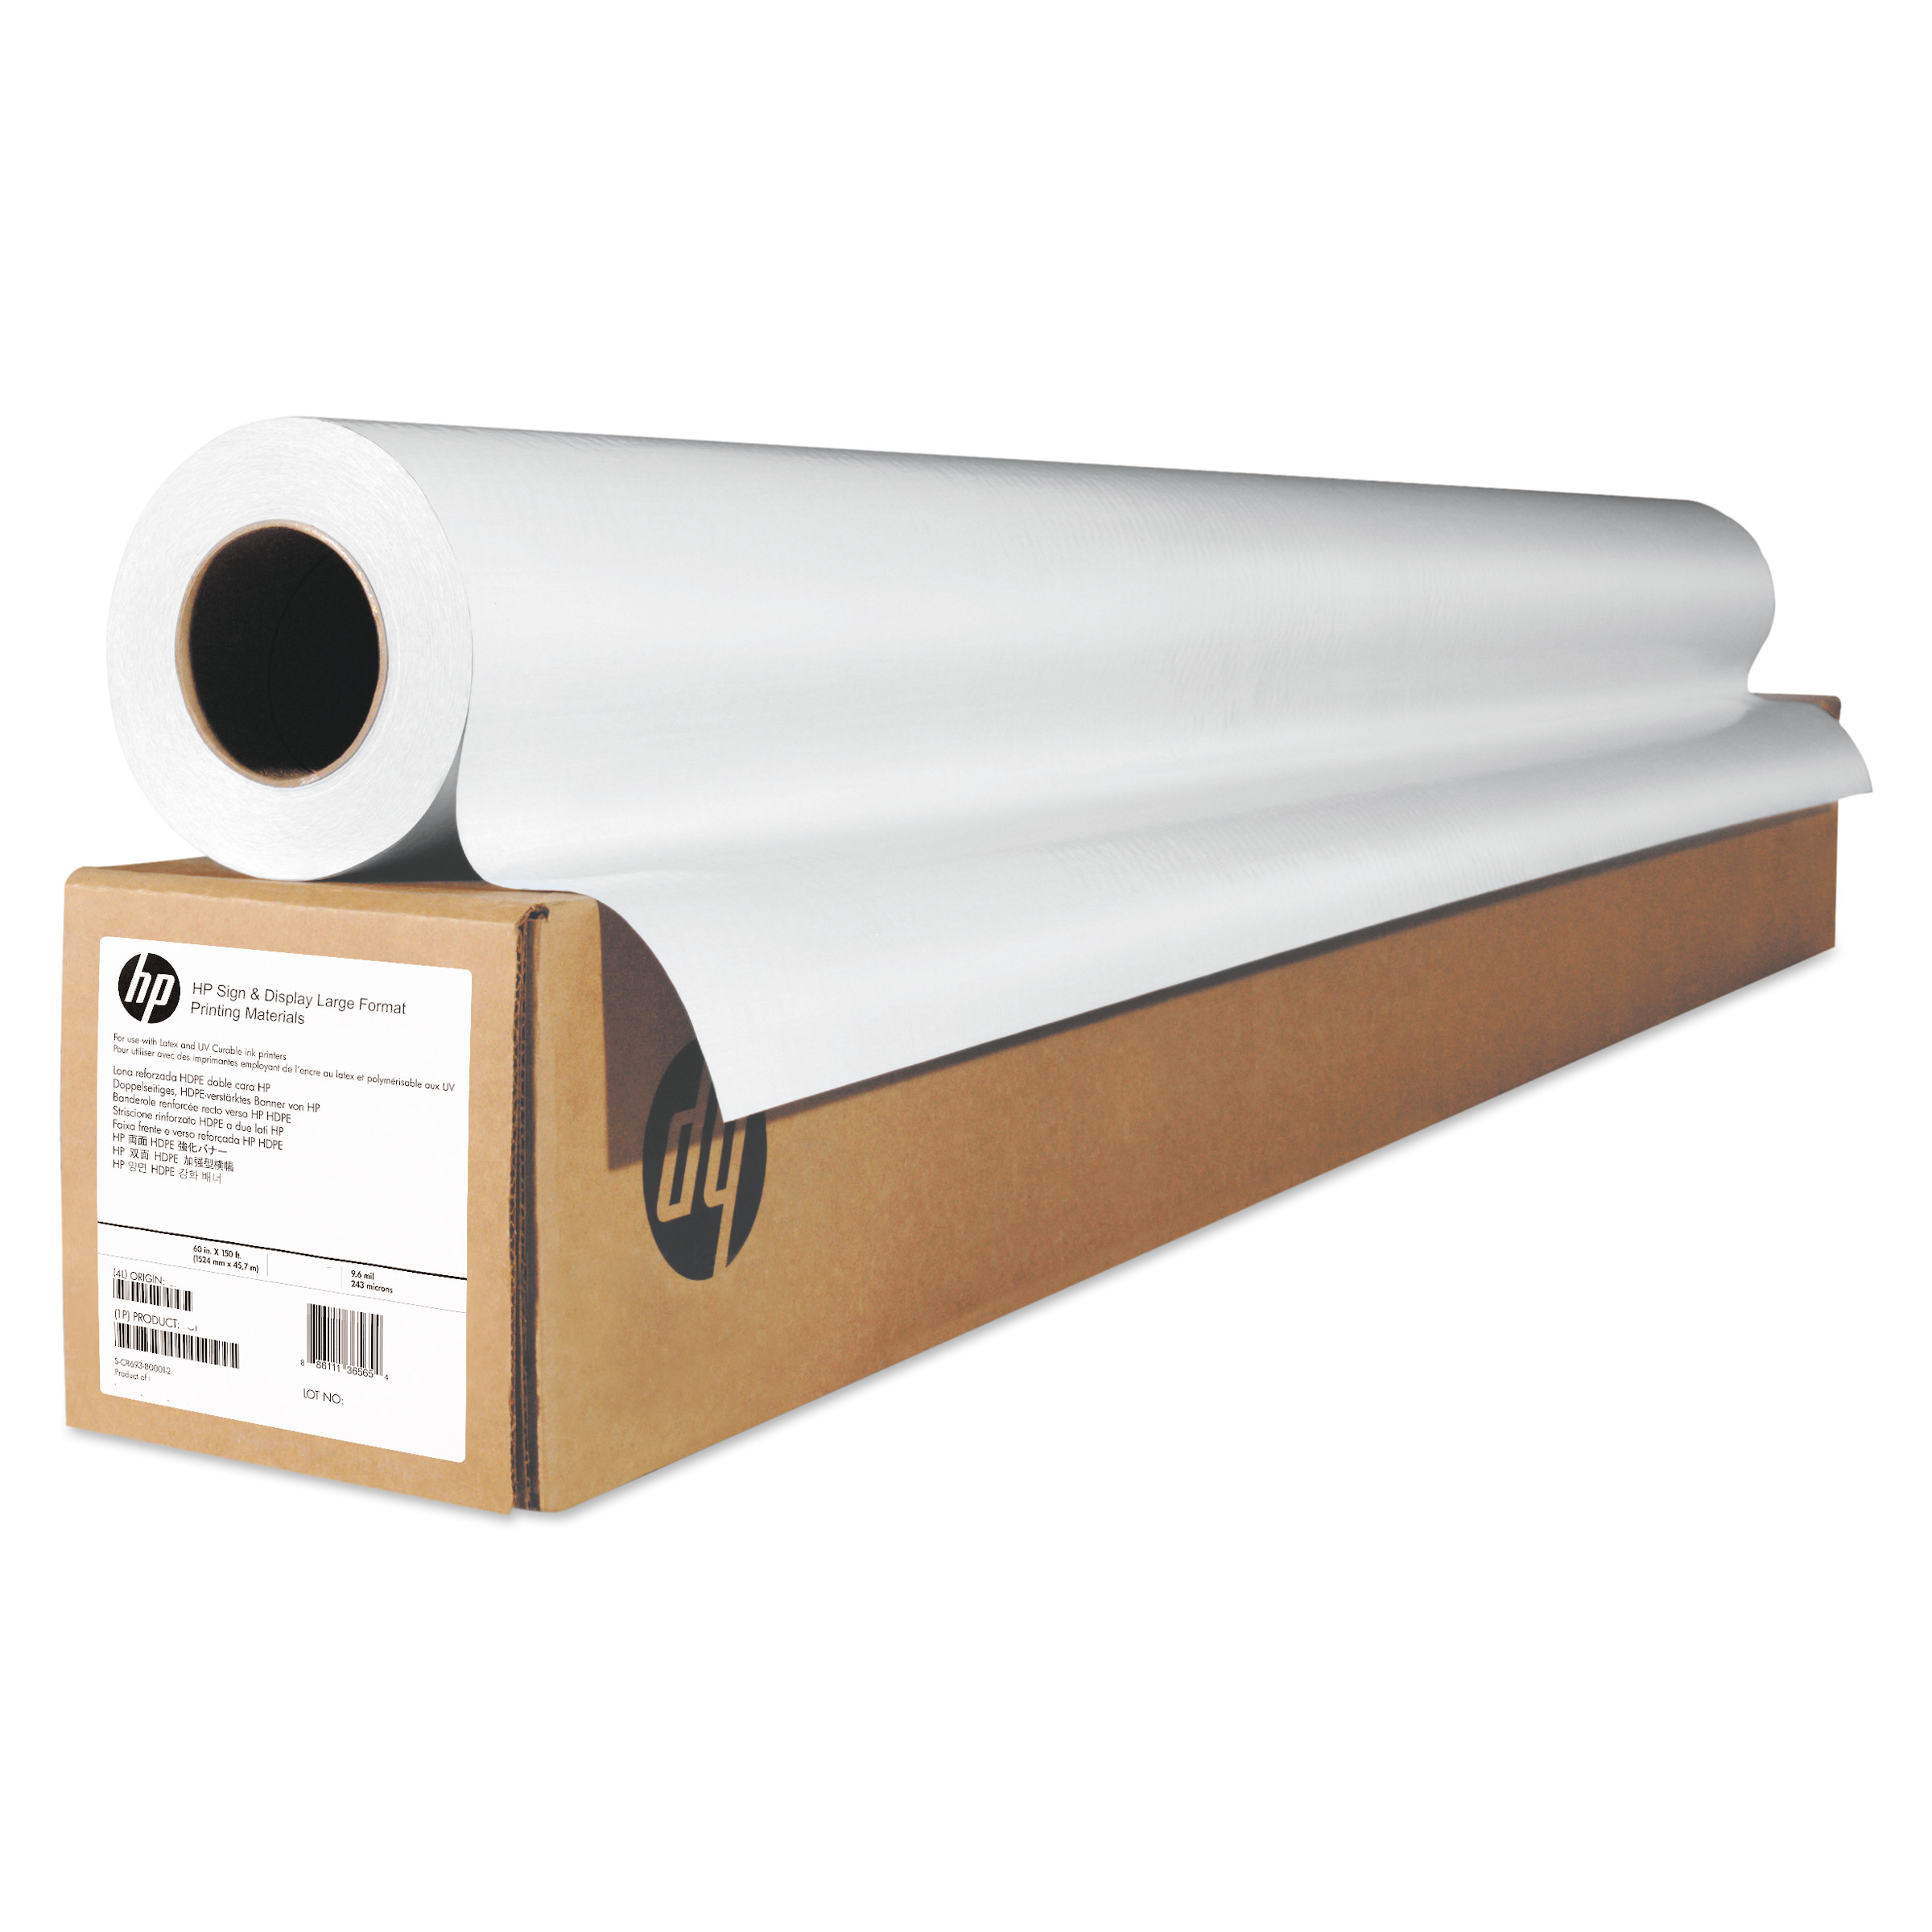 "HP Wide Format Pro Matte Canvas Paper Roll, 36"" x 50 ft, 16 mil, White"